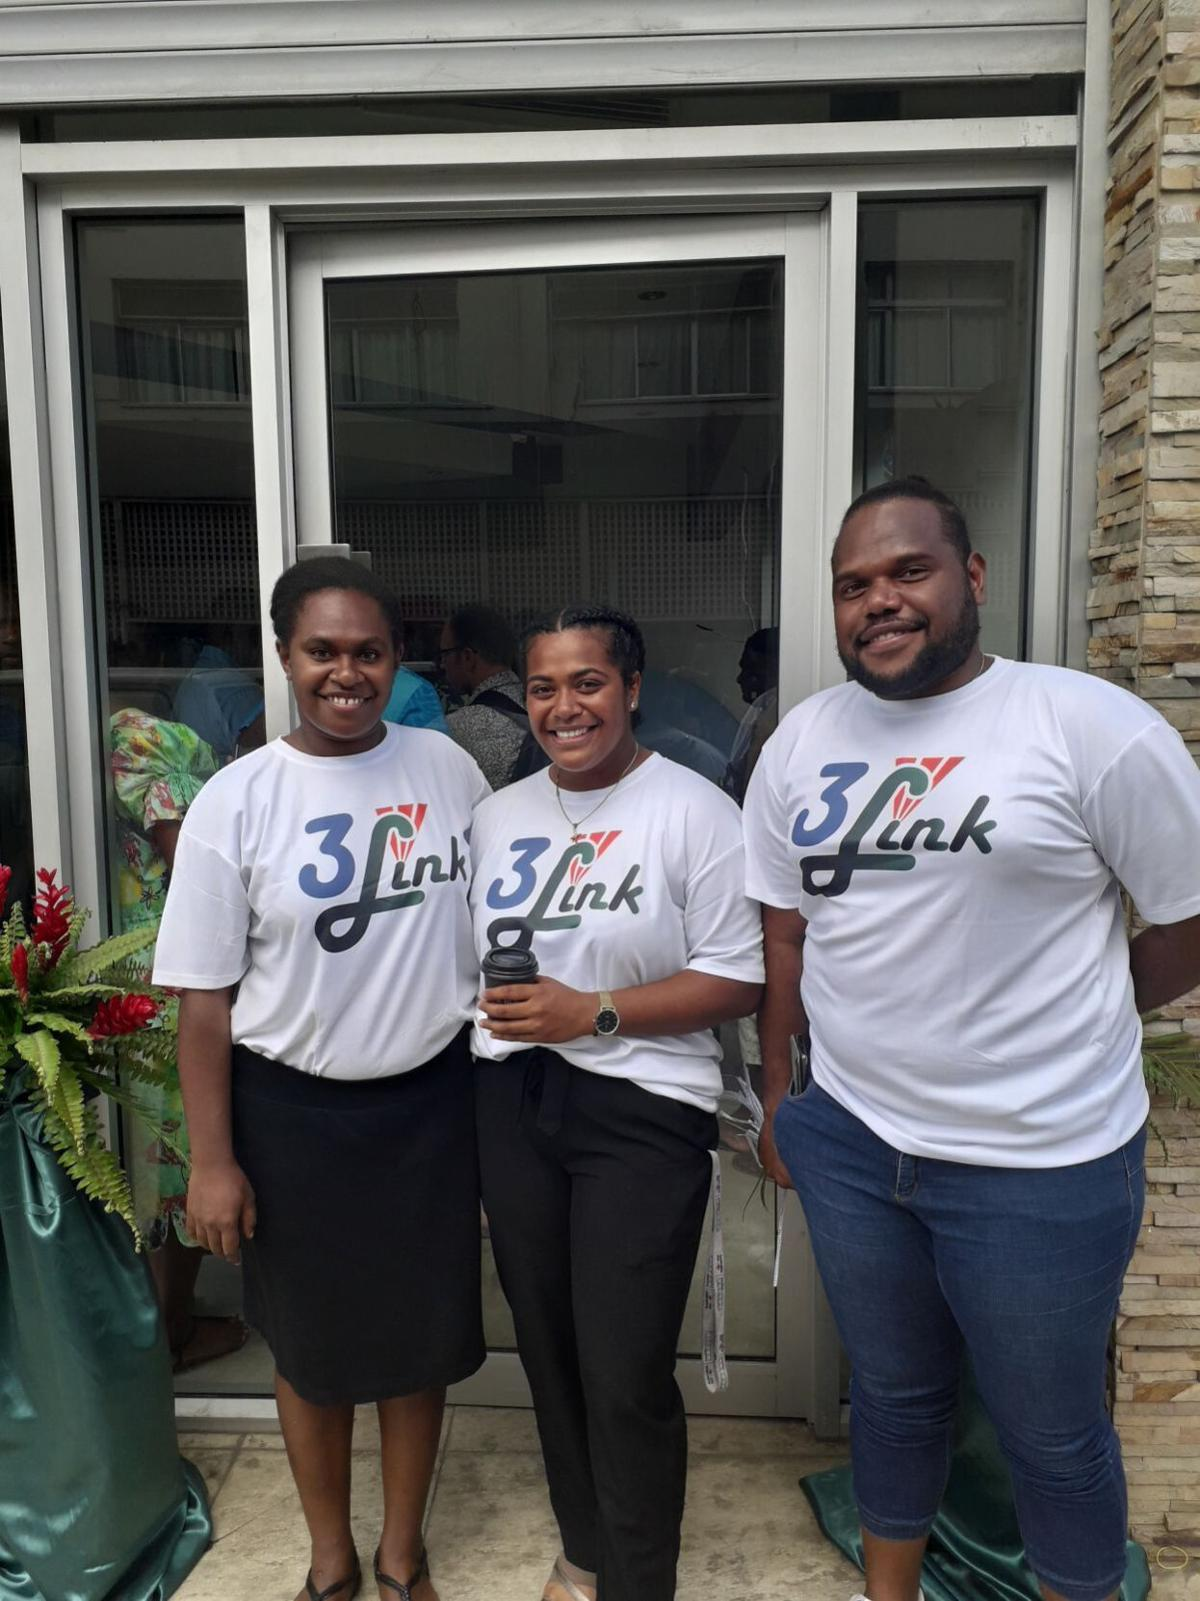 3 Link staff welcoming people to their grand opening